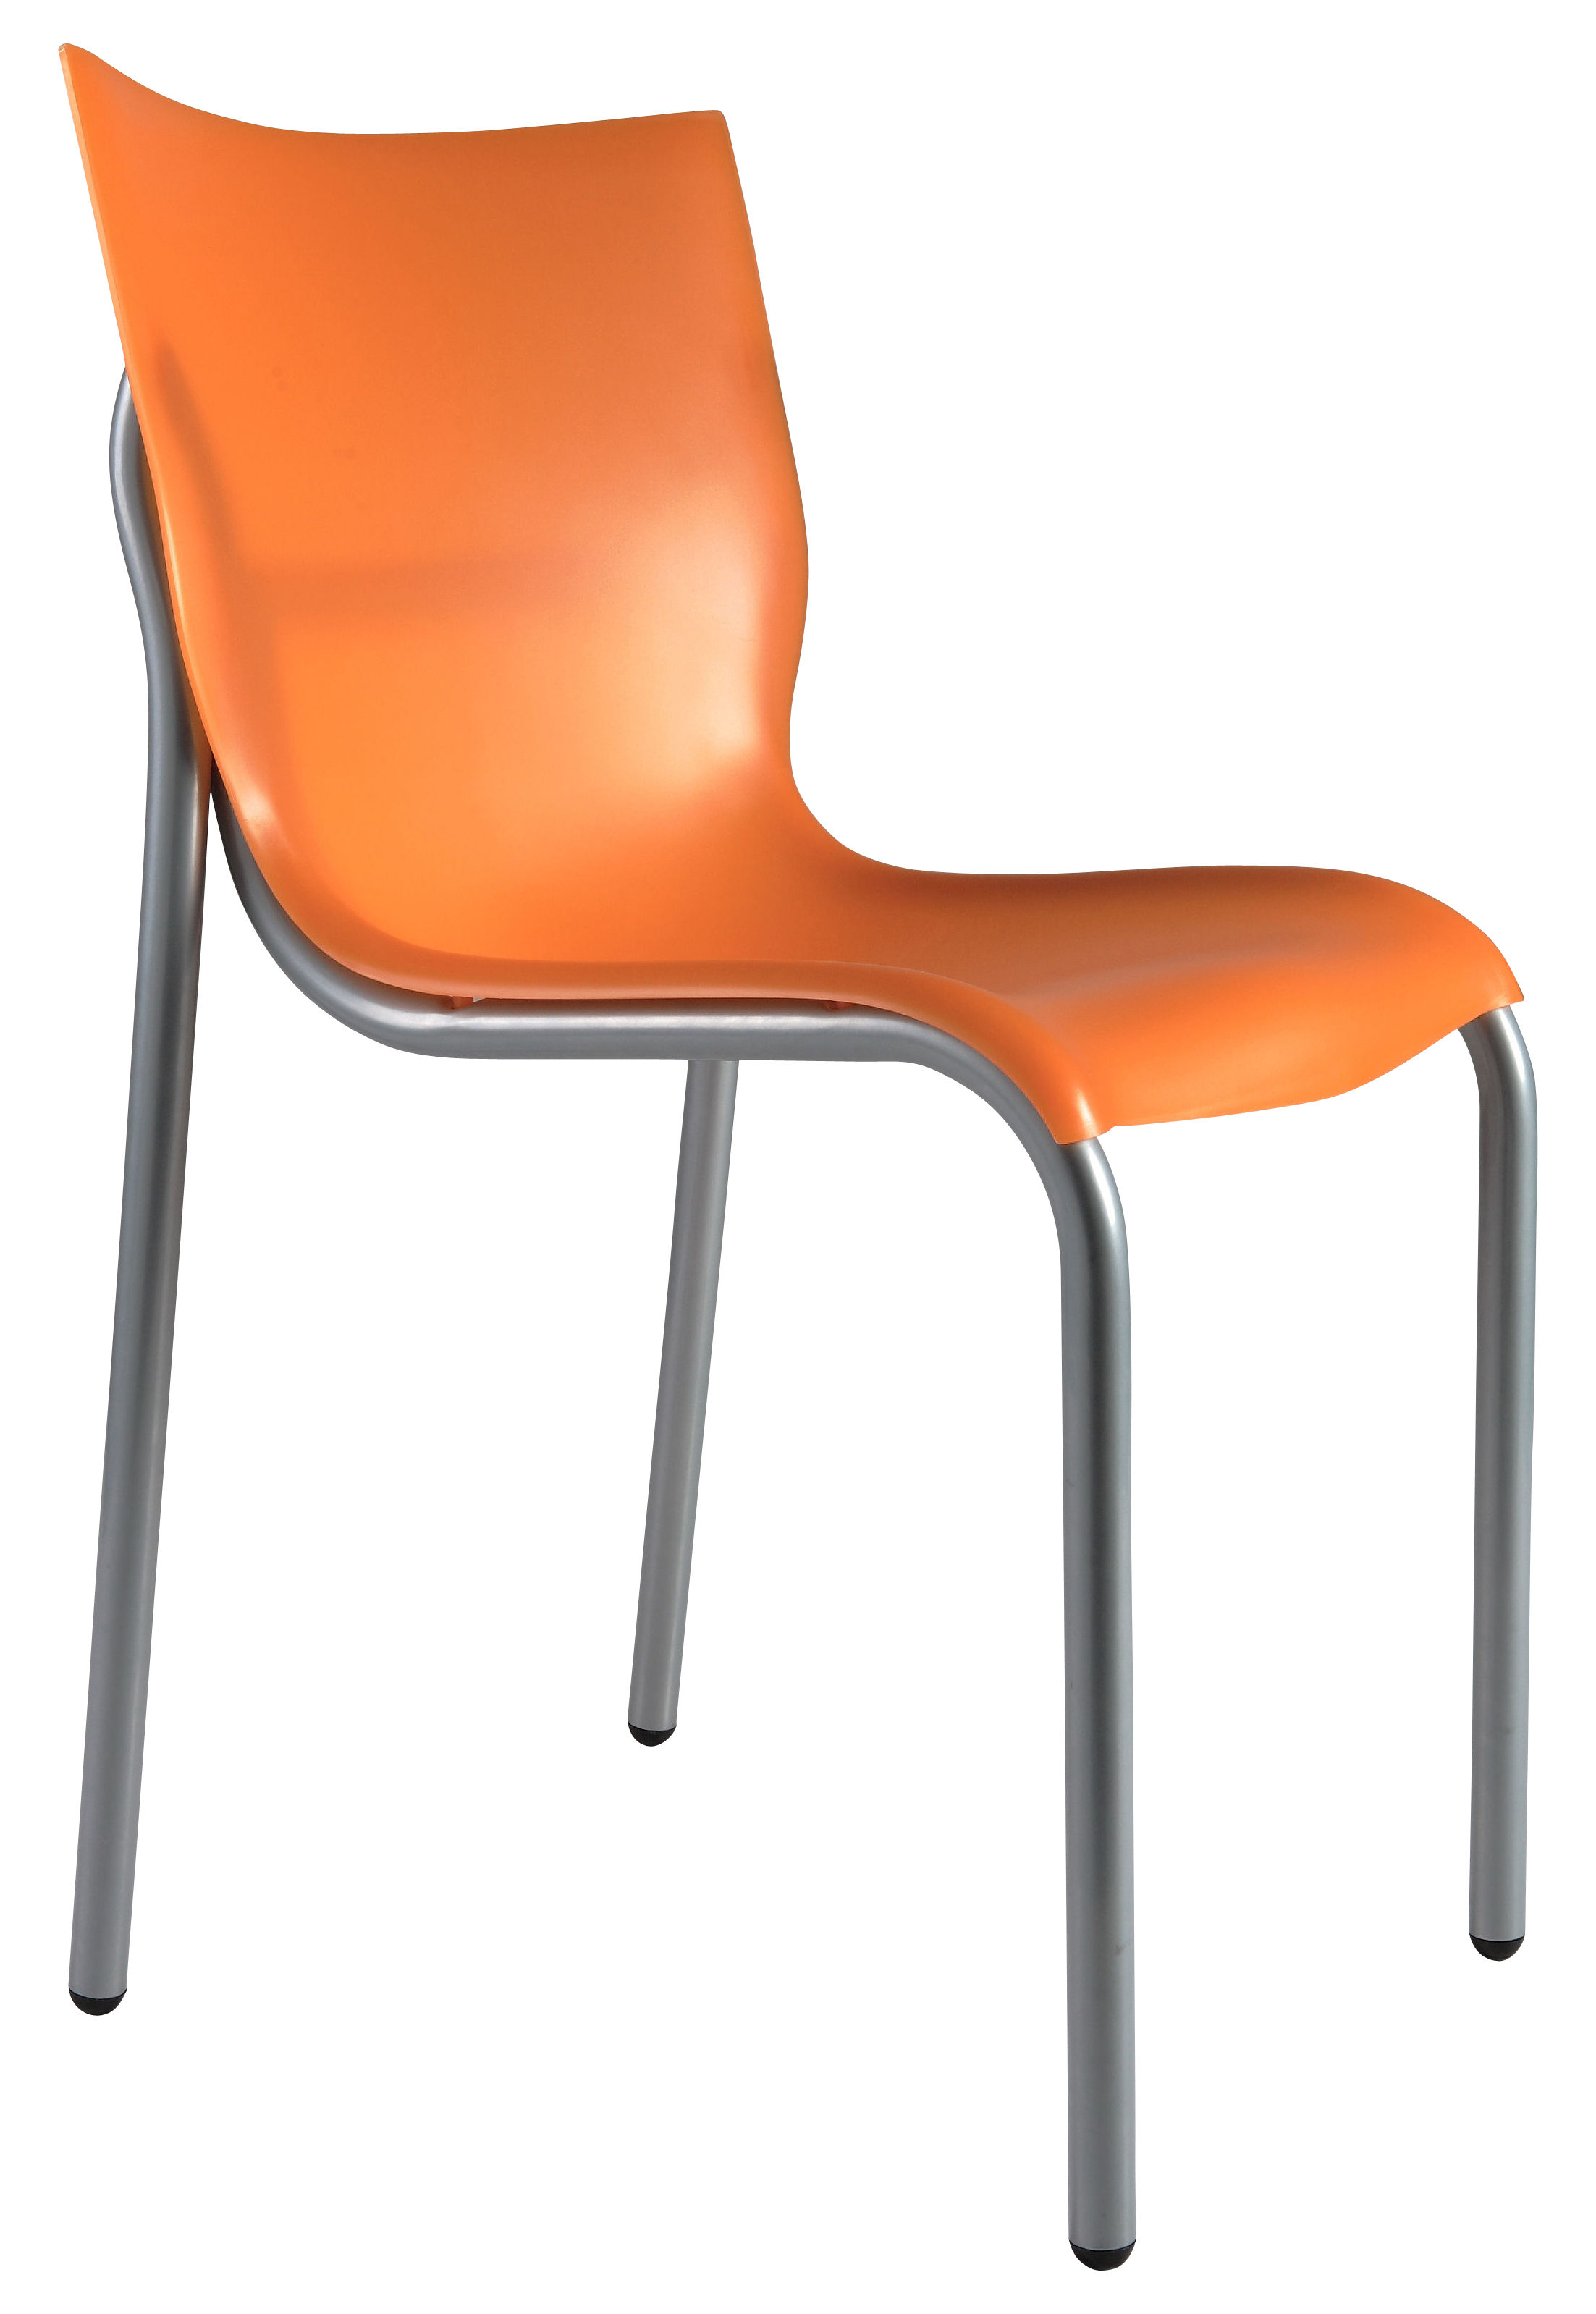 Chaise cheap chic orange translucide xo for Chaise xo starck